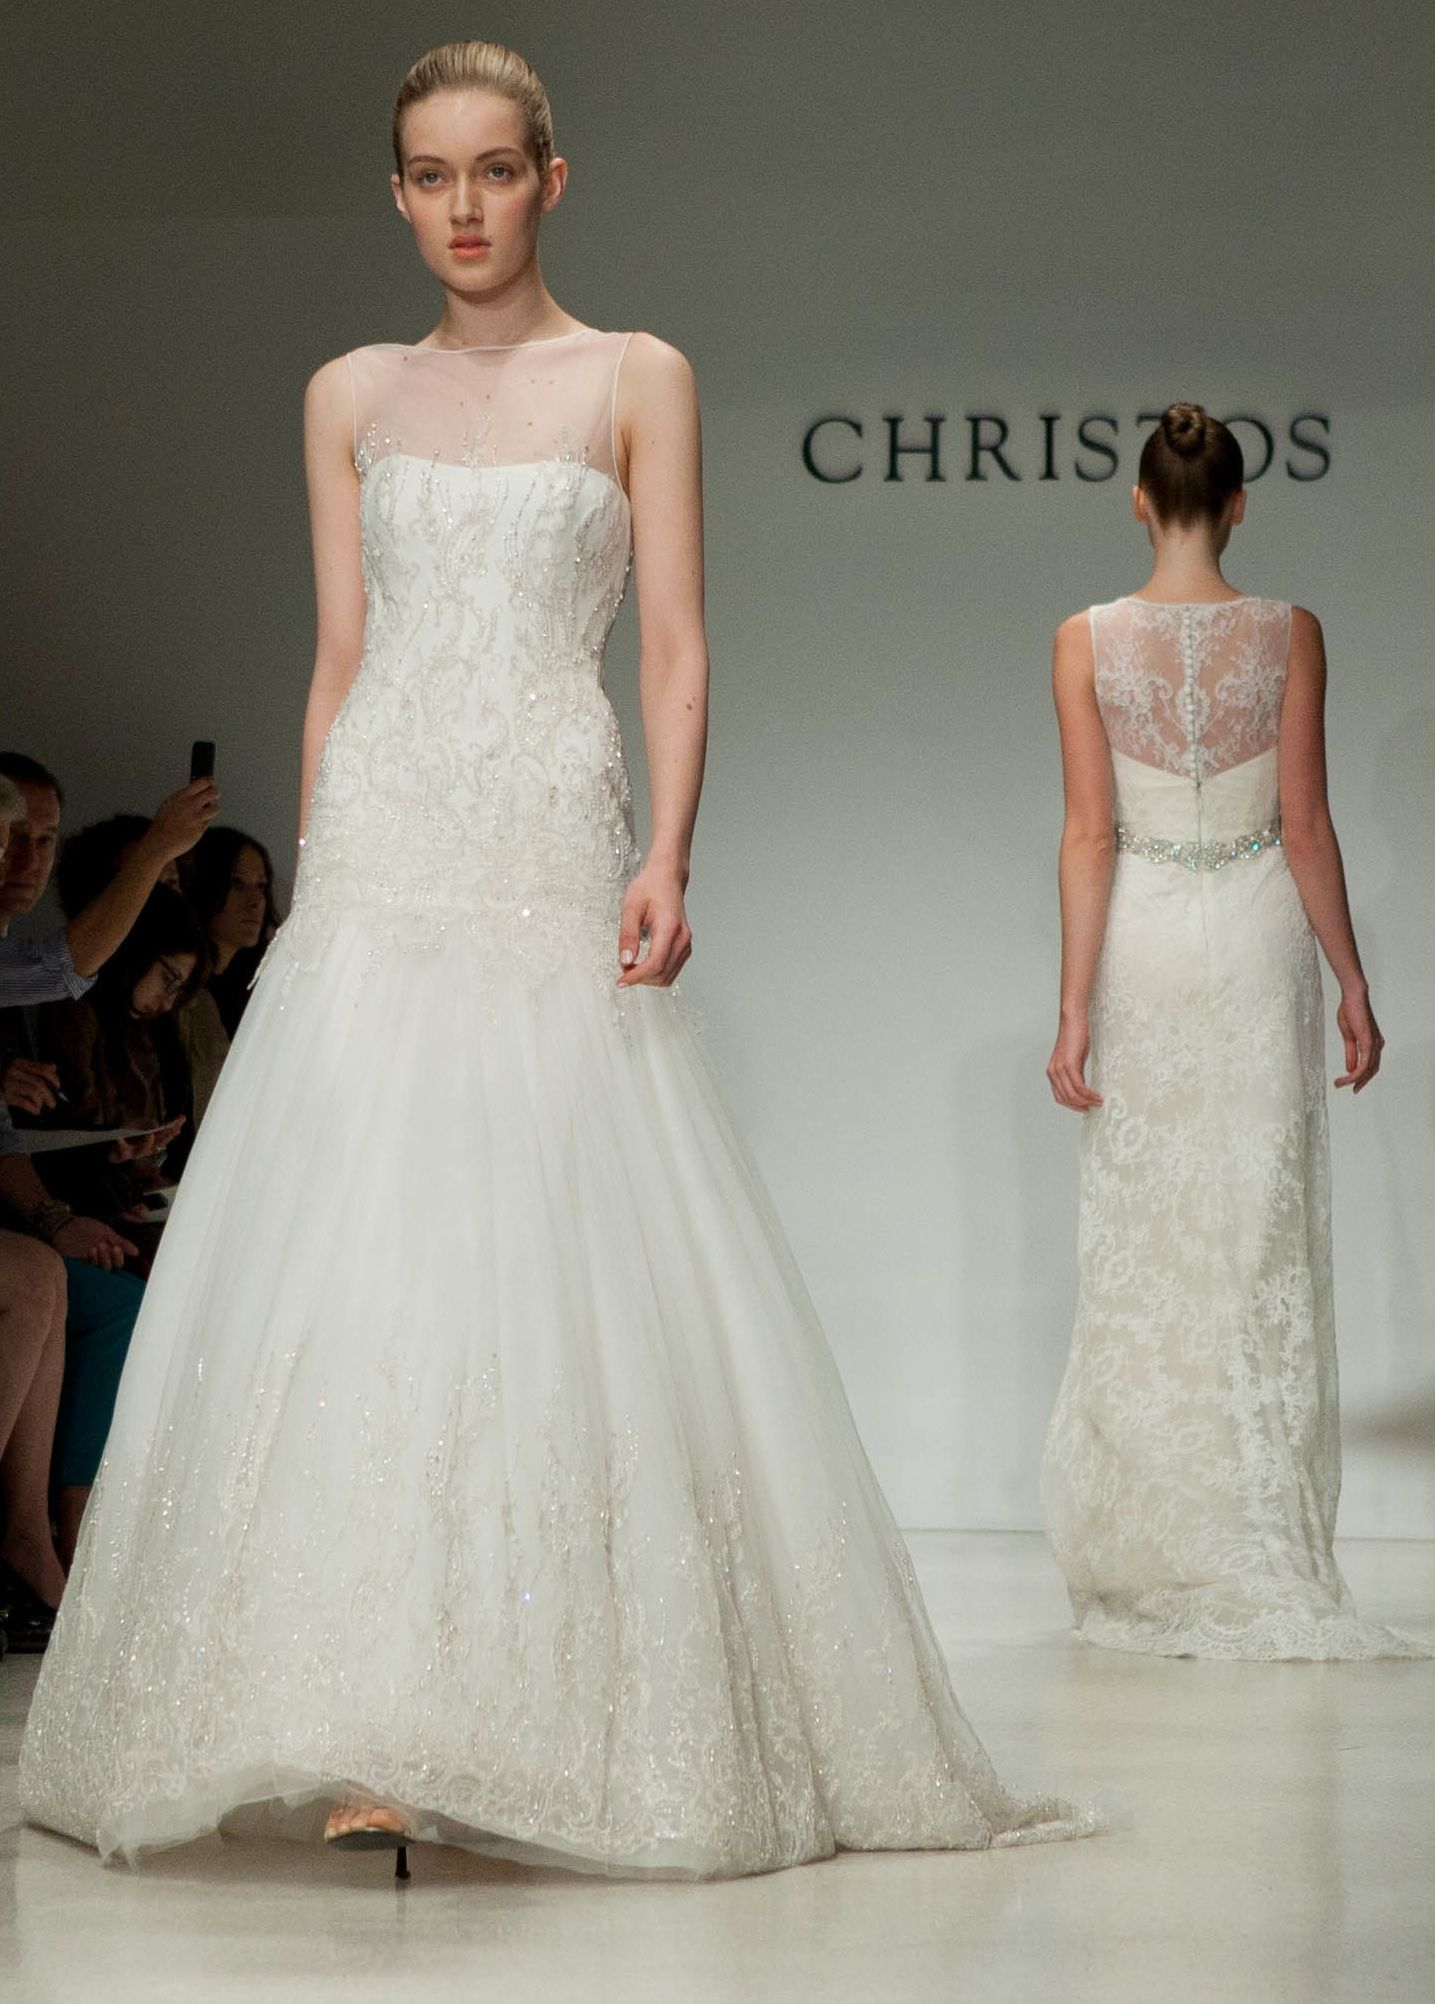 Dresses with an illusion neckline give a bride confidence that the dress will not fall down whilst dancing, but will reveal enough to make a bride feel sexy and feminine. Description from naomis23.wix.com. I searched for this on bing.com/images